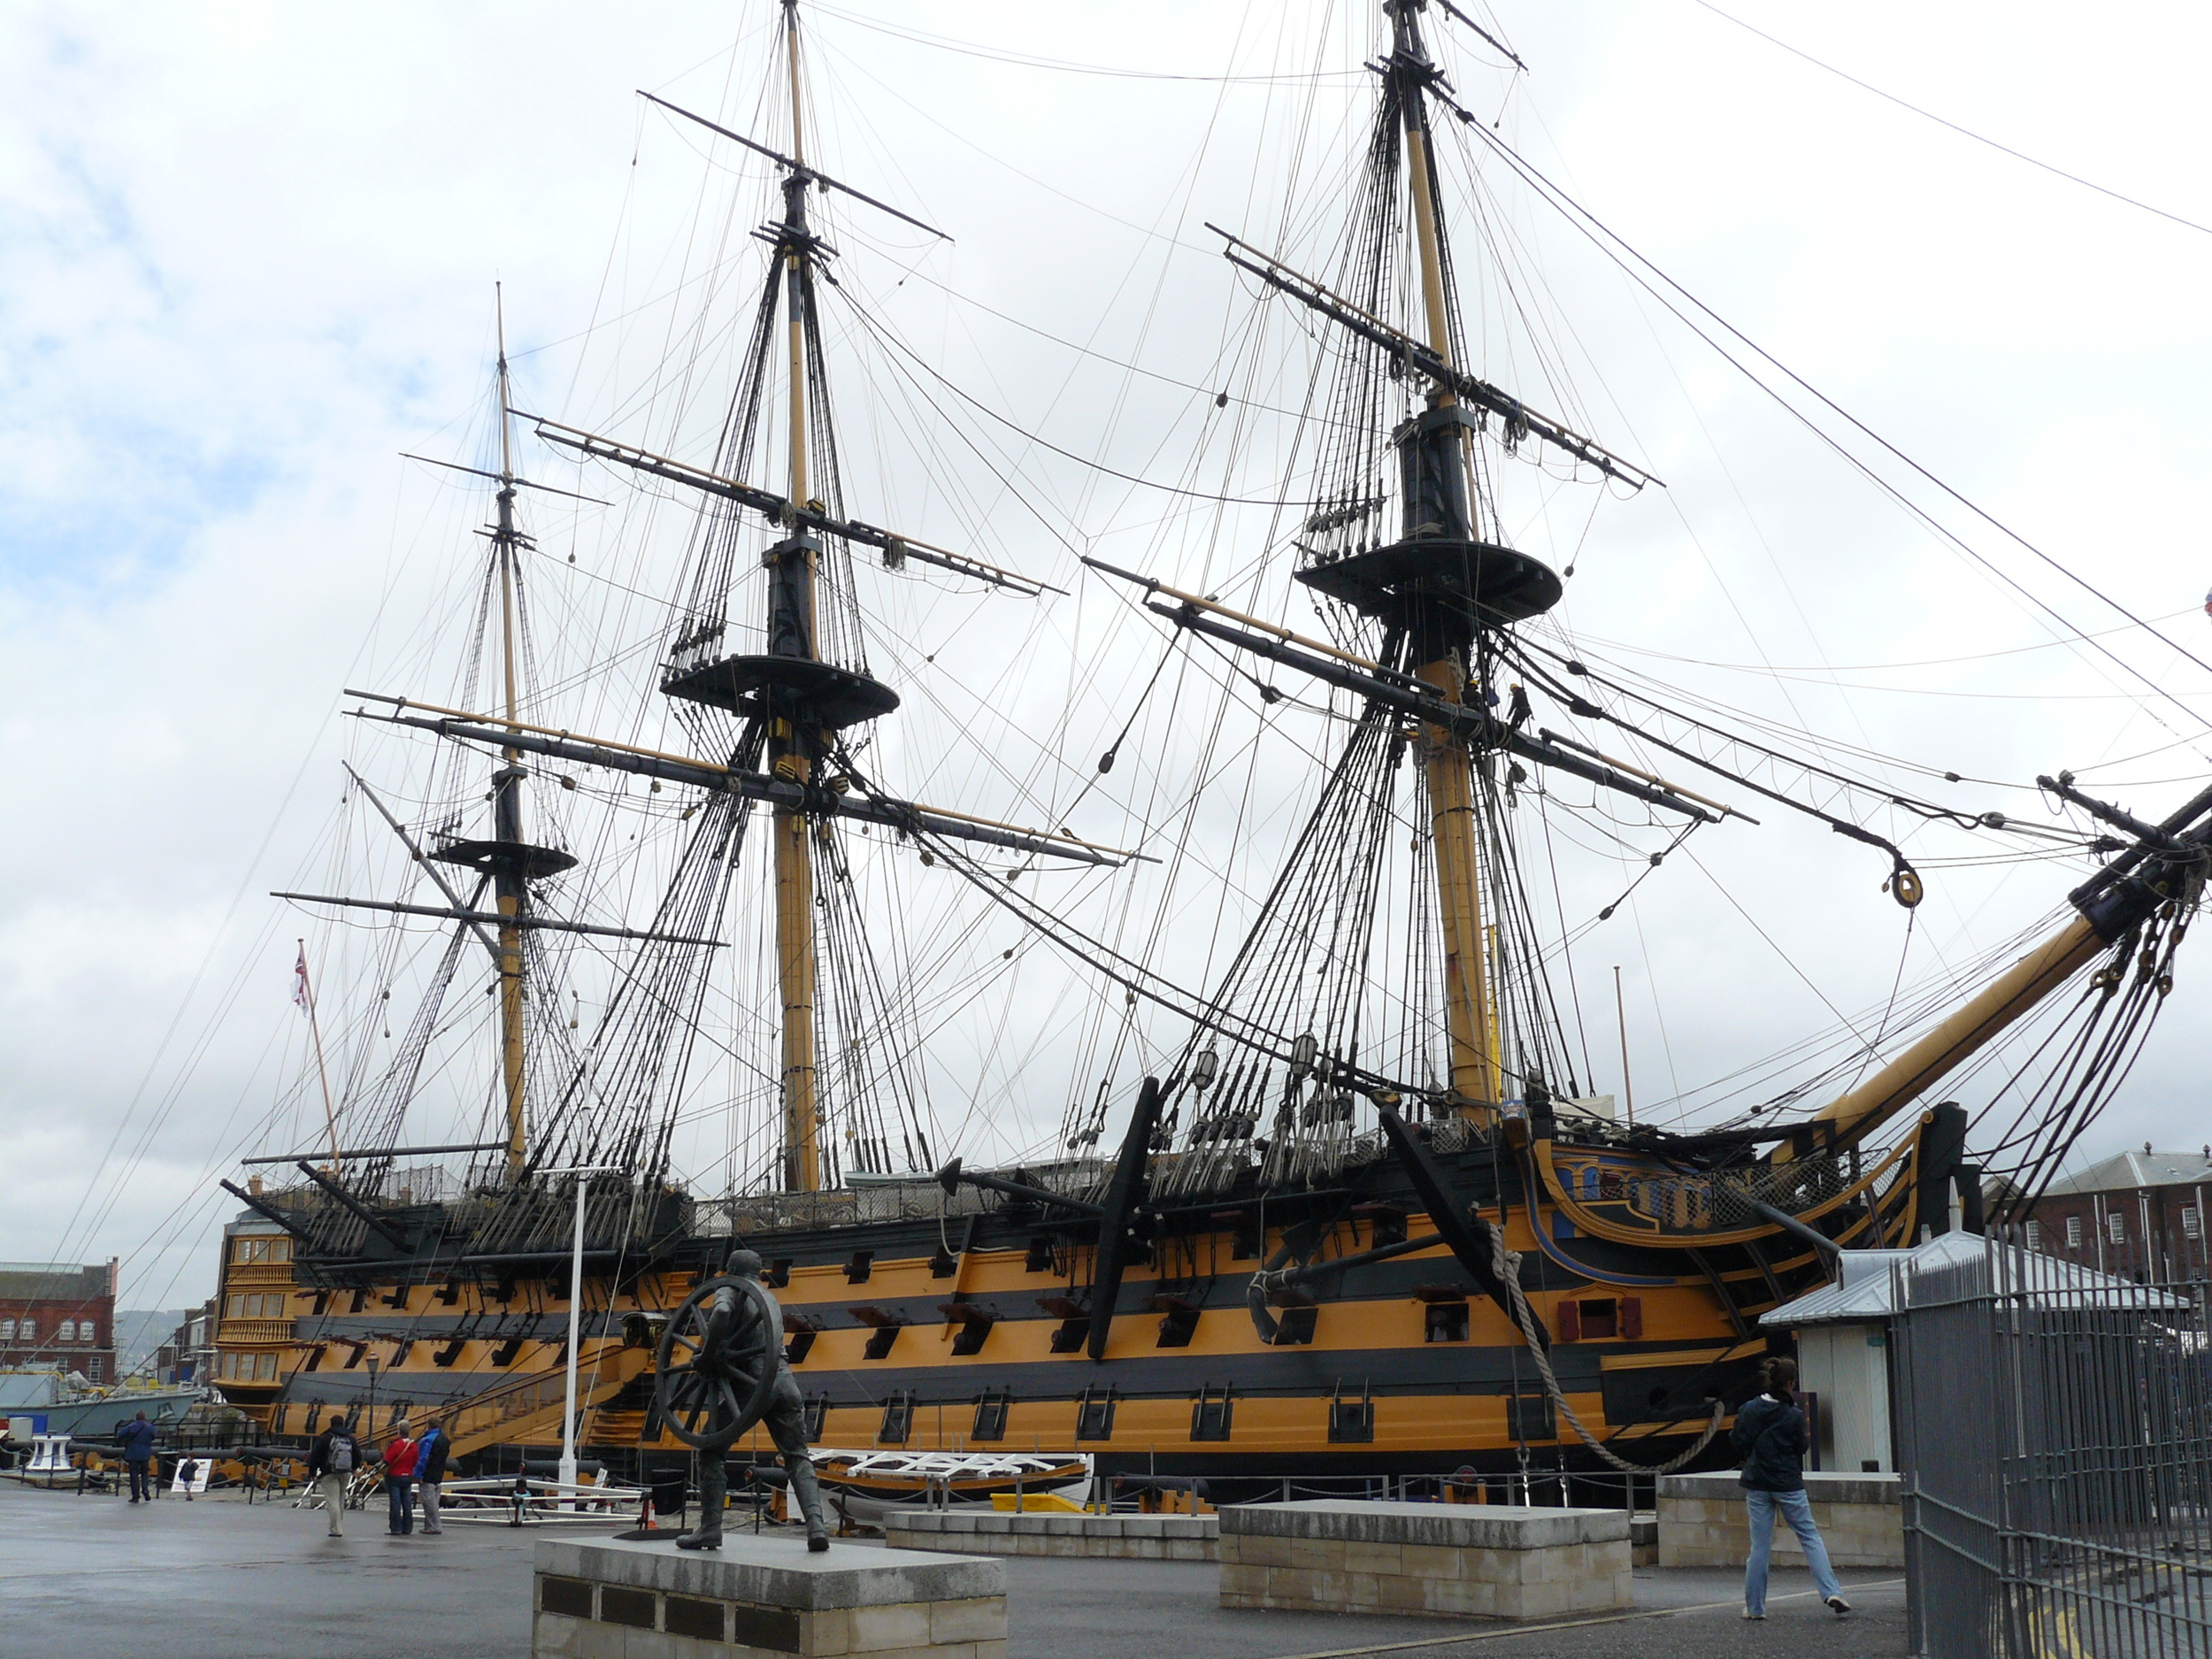 The HMS Victory. Lord Nelson's flagship during the early 1800's.